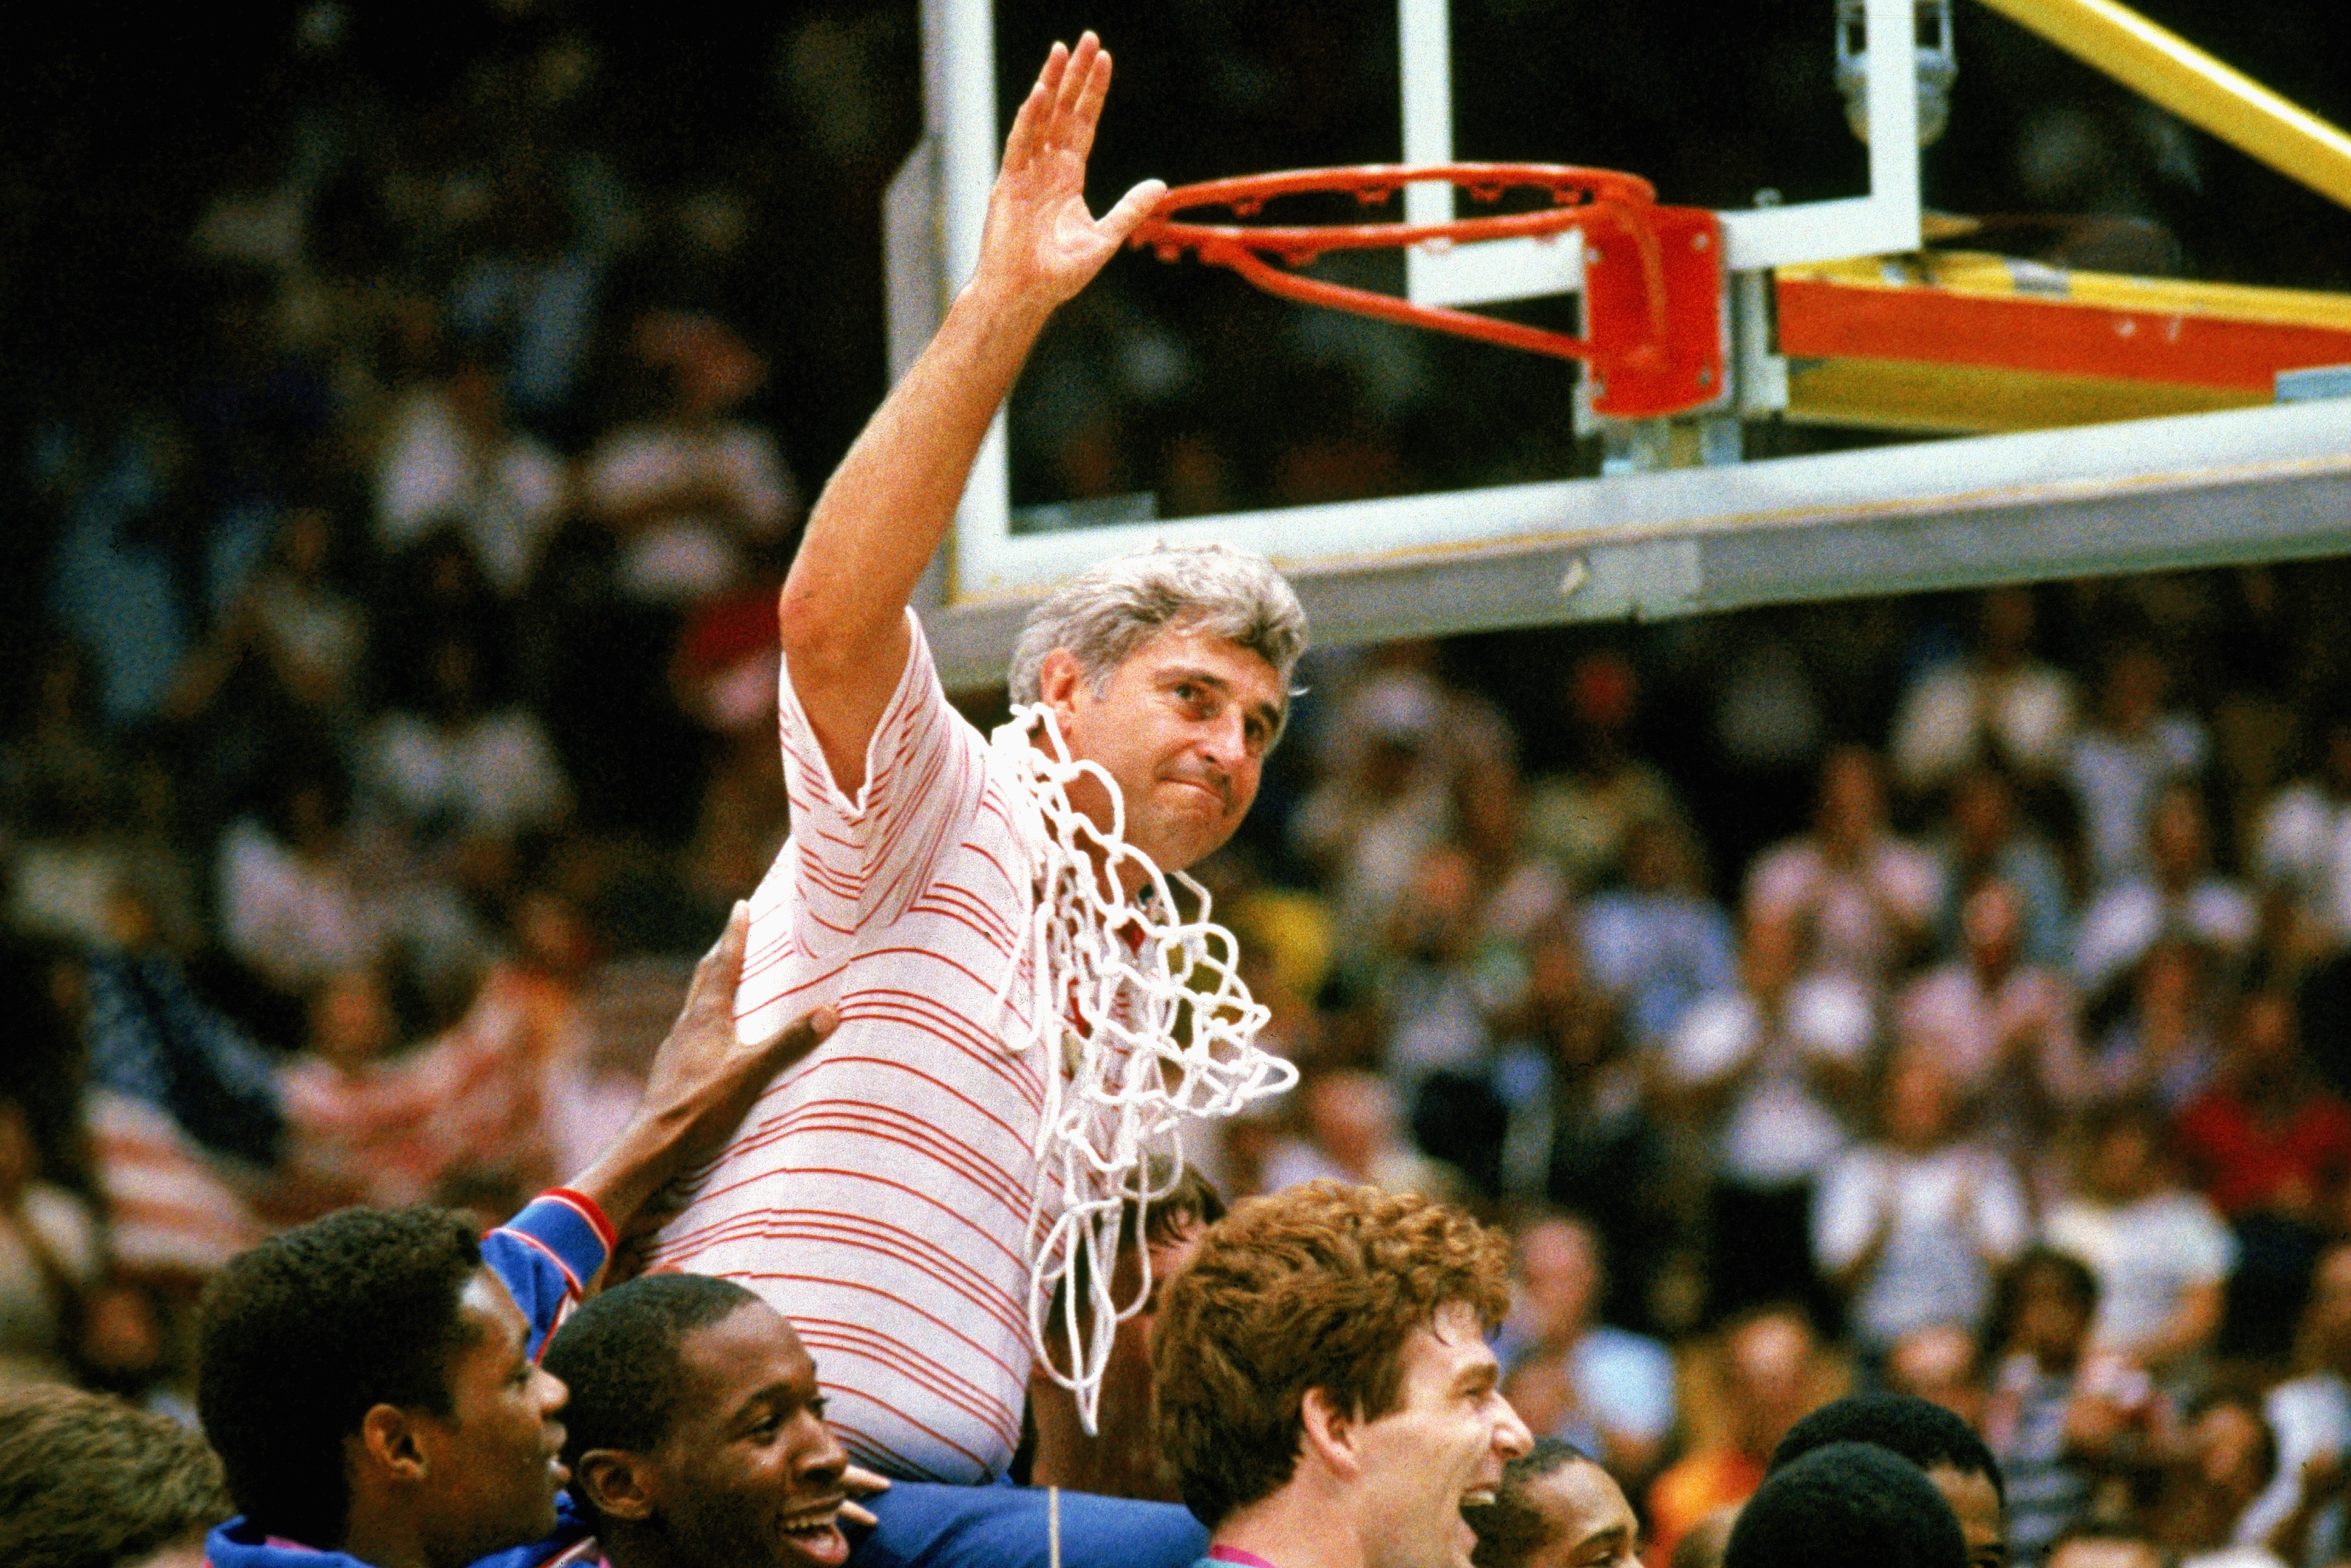 UNDATED: Bobby Knight coach for Indiana University mens basketball cuts down the nets to celebrate a big victory. (Photo by Getty Images)